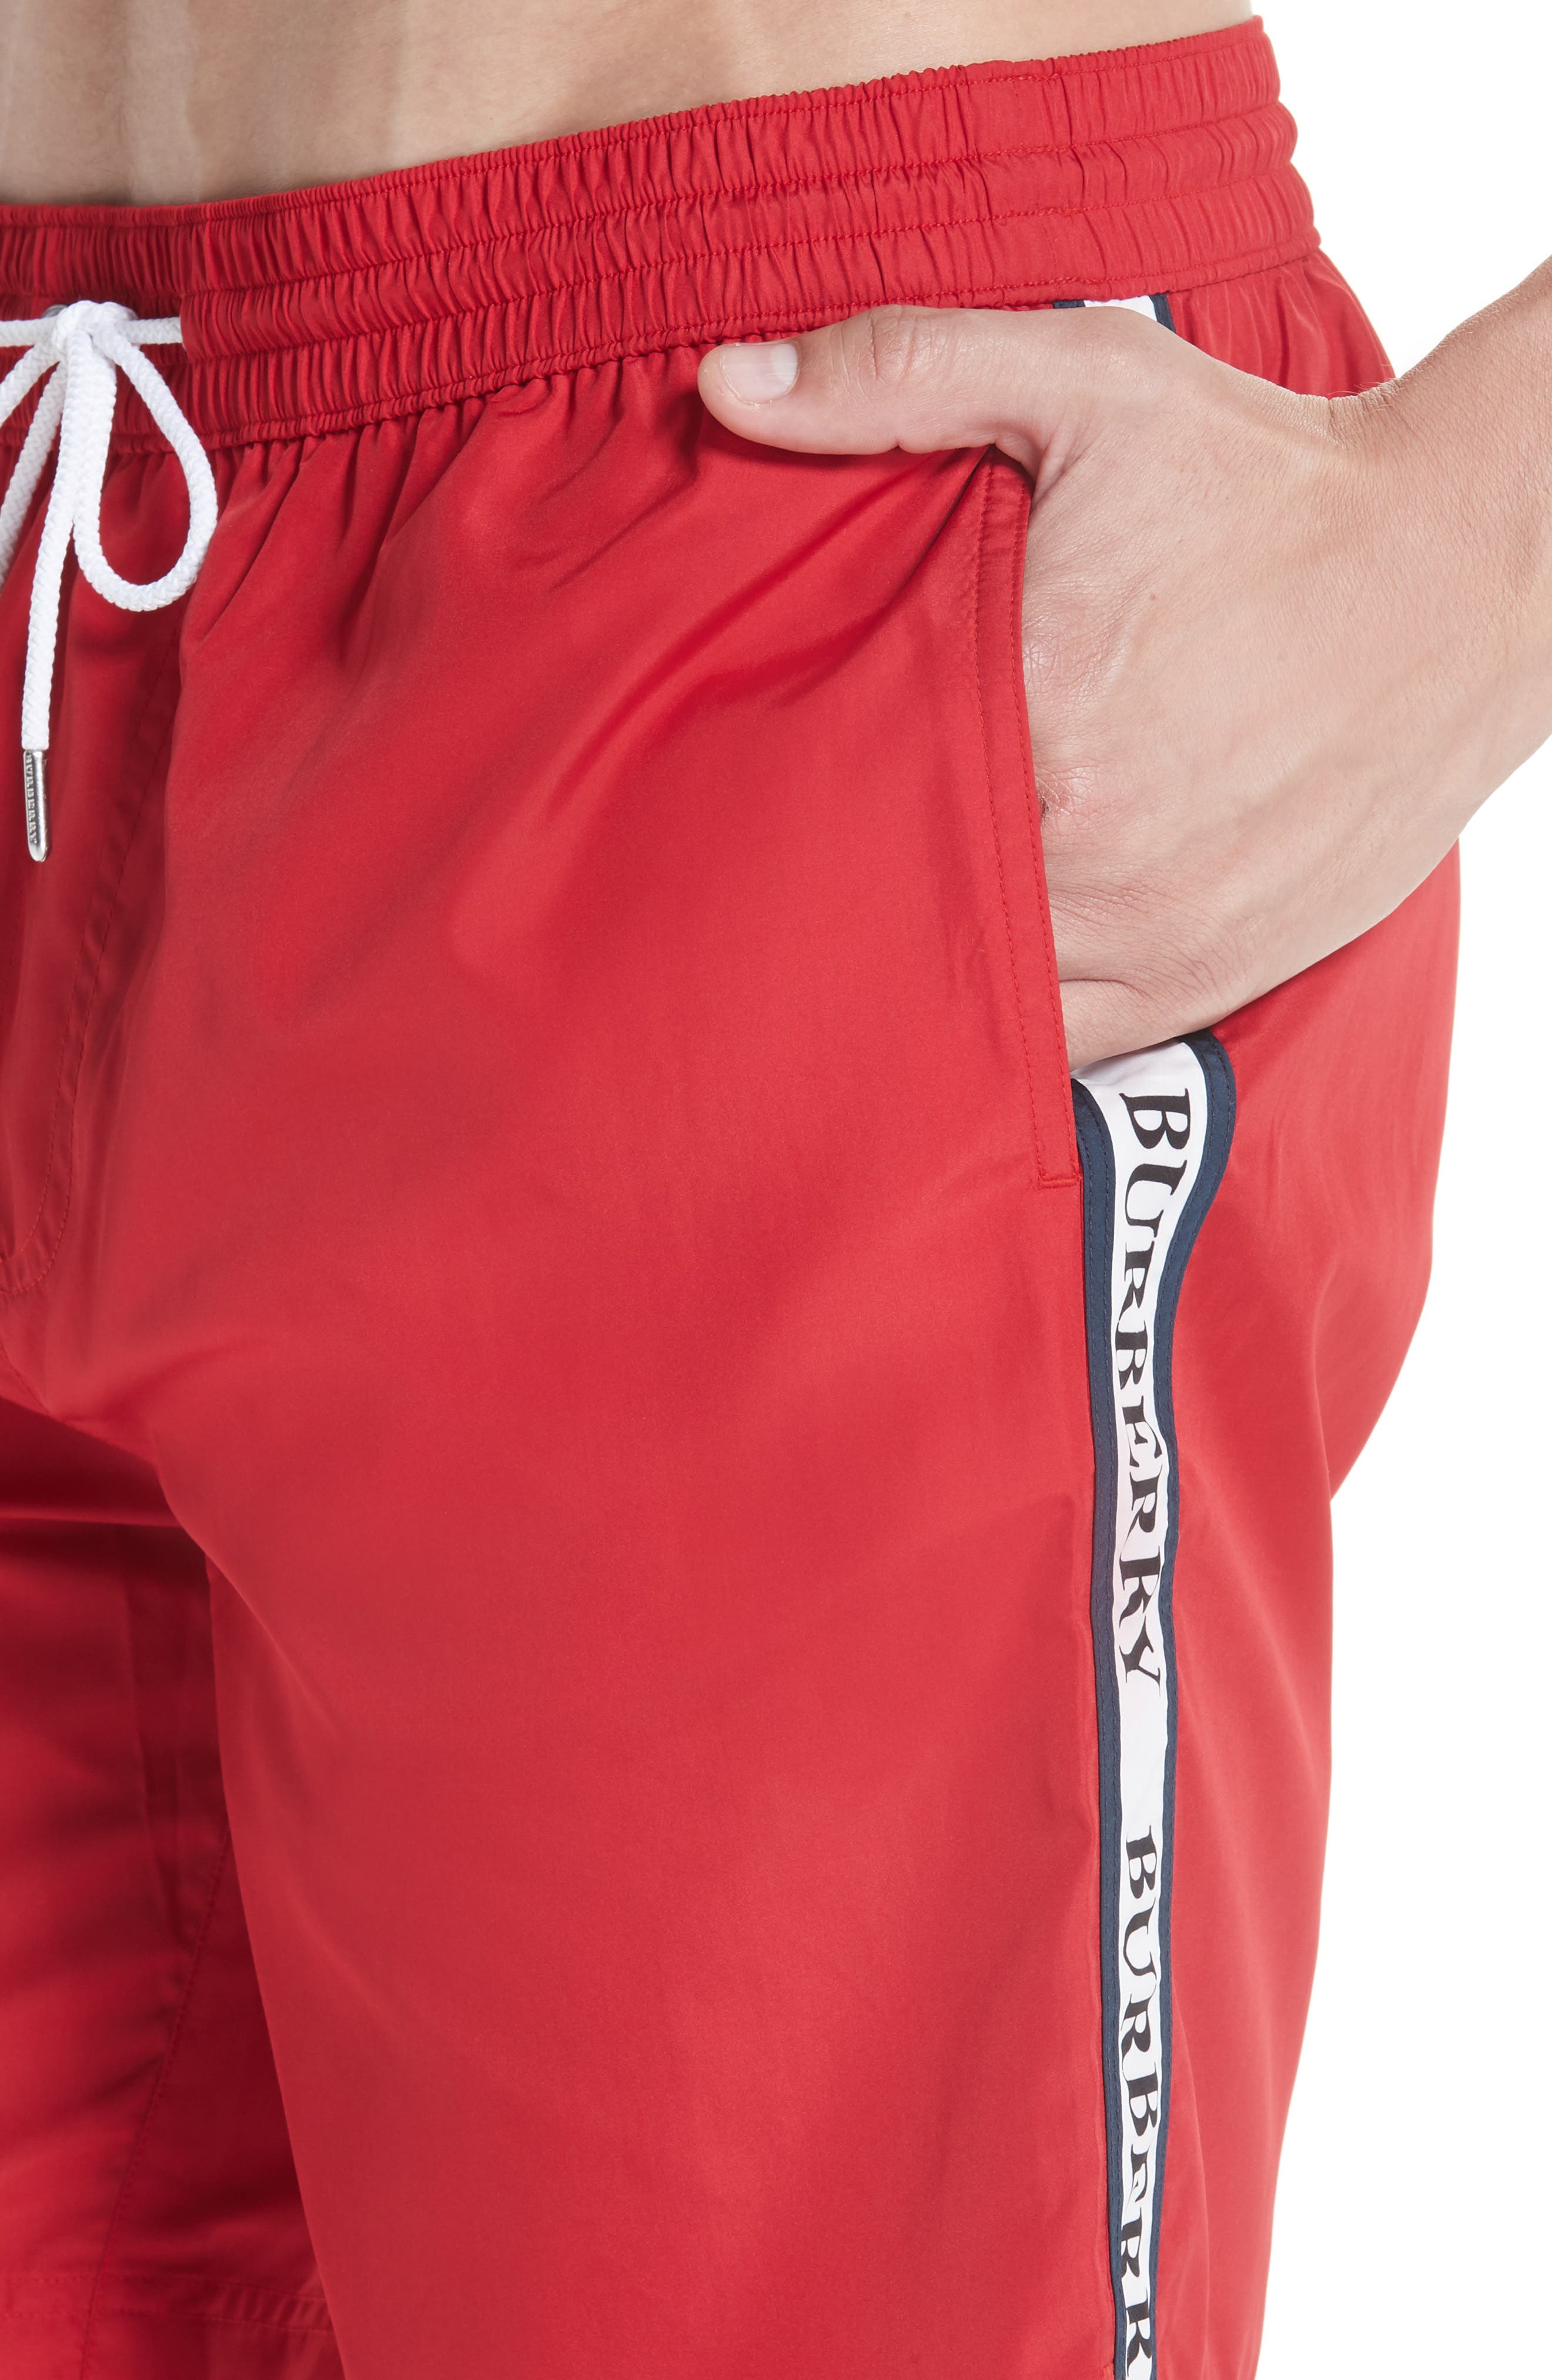 Guildes Swim Trunks,                             Alternate thumbnail 4, color,                             PARADE RED